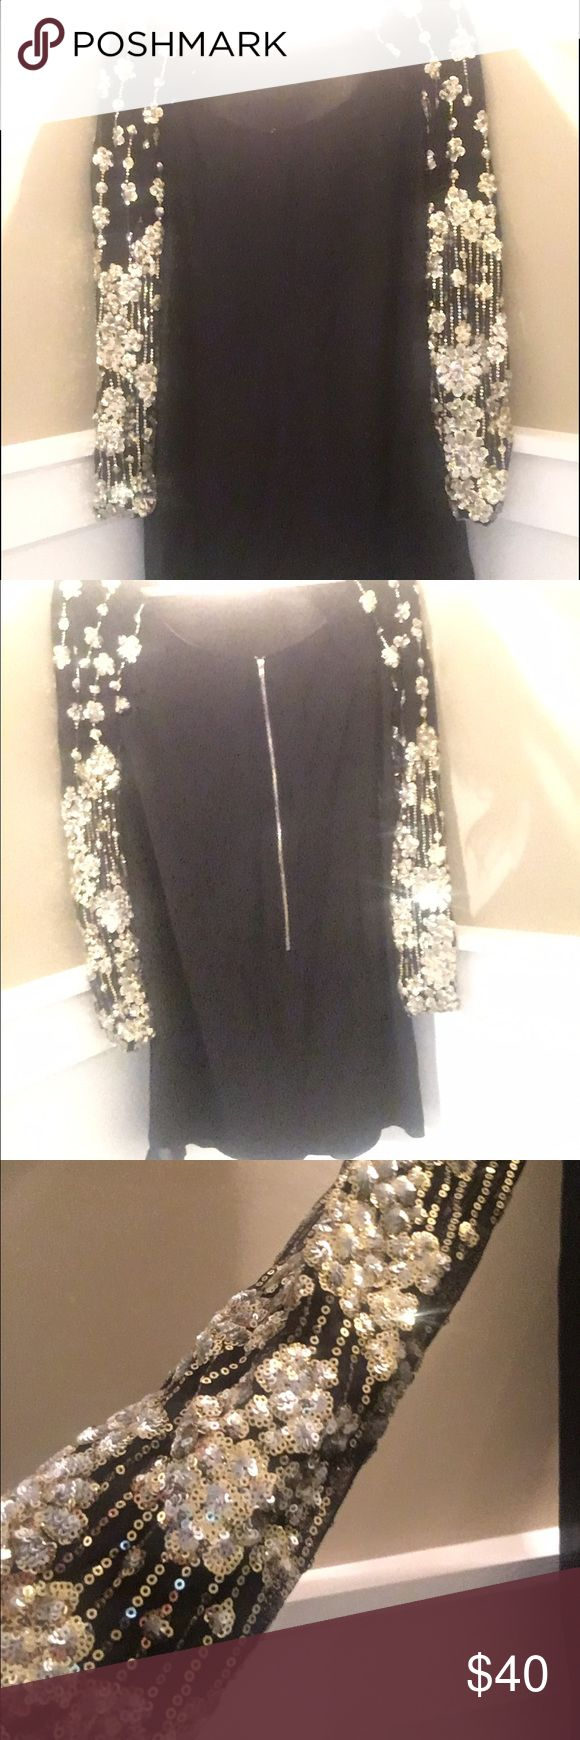 NWOT black long sleeve semi-formal dress NWOT black long sleeve semi-formal dress. Purchased as an option for a holiday party. Never worn. Dresses Long Sleeve